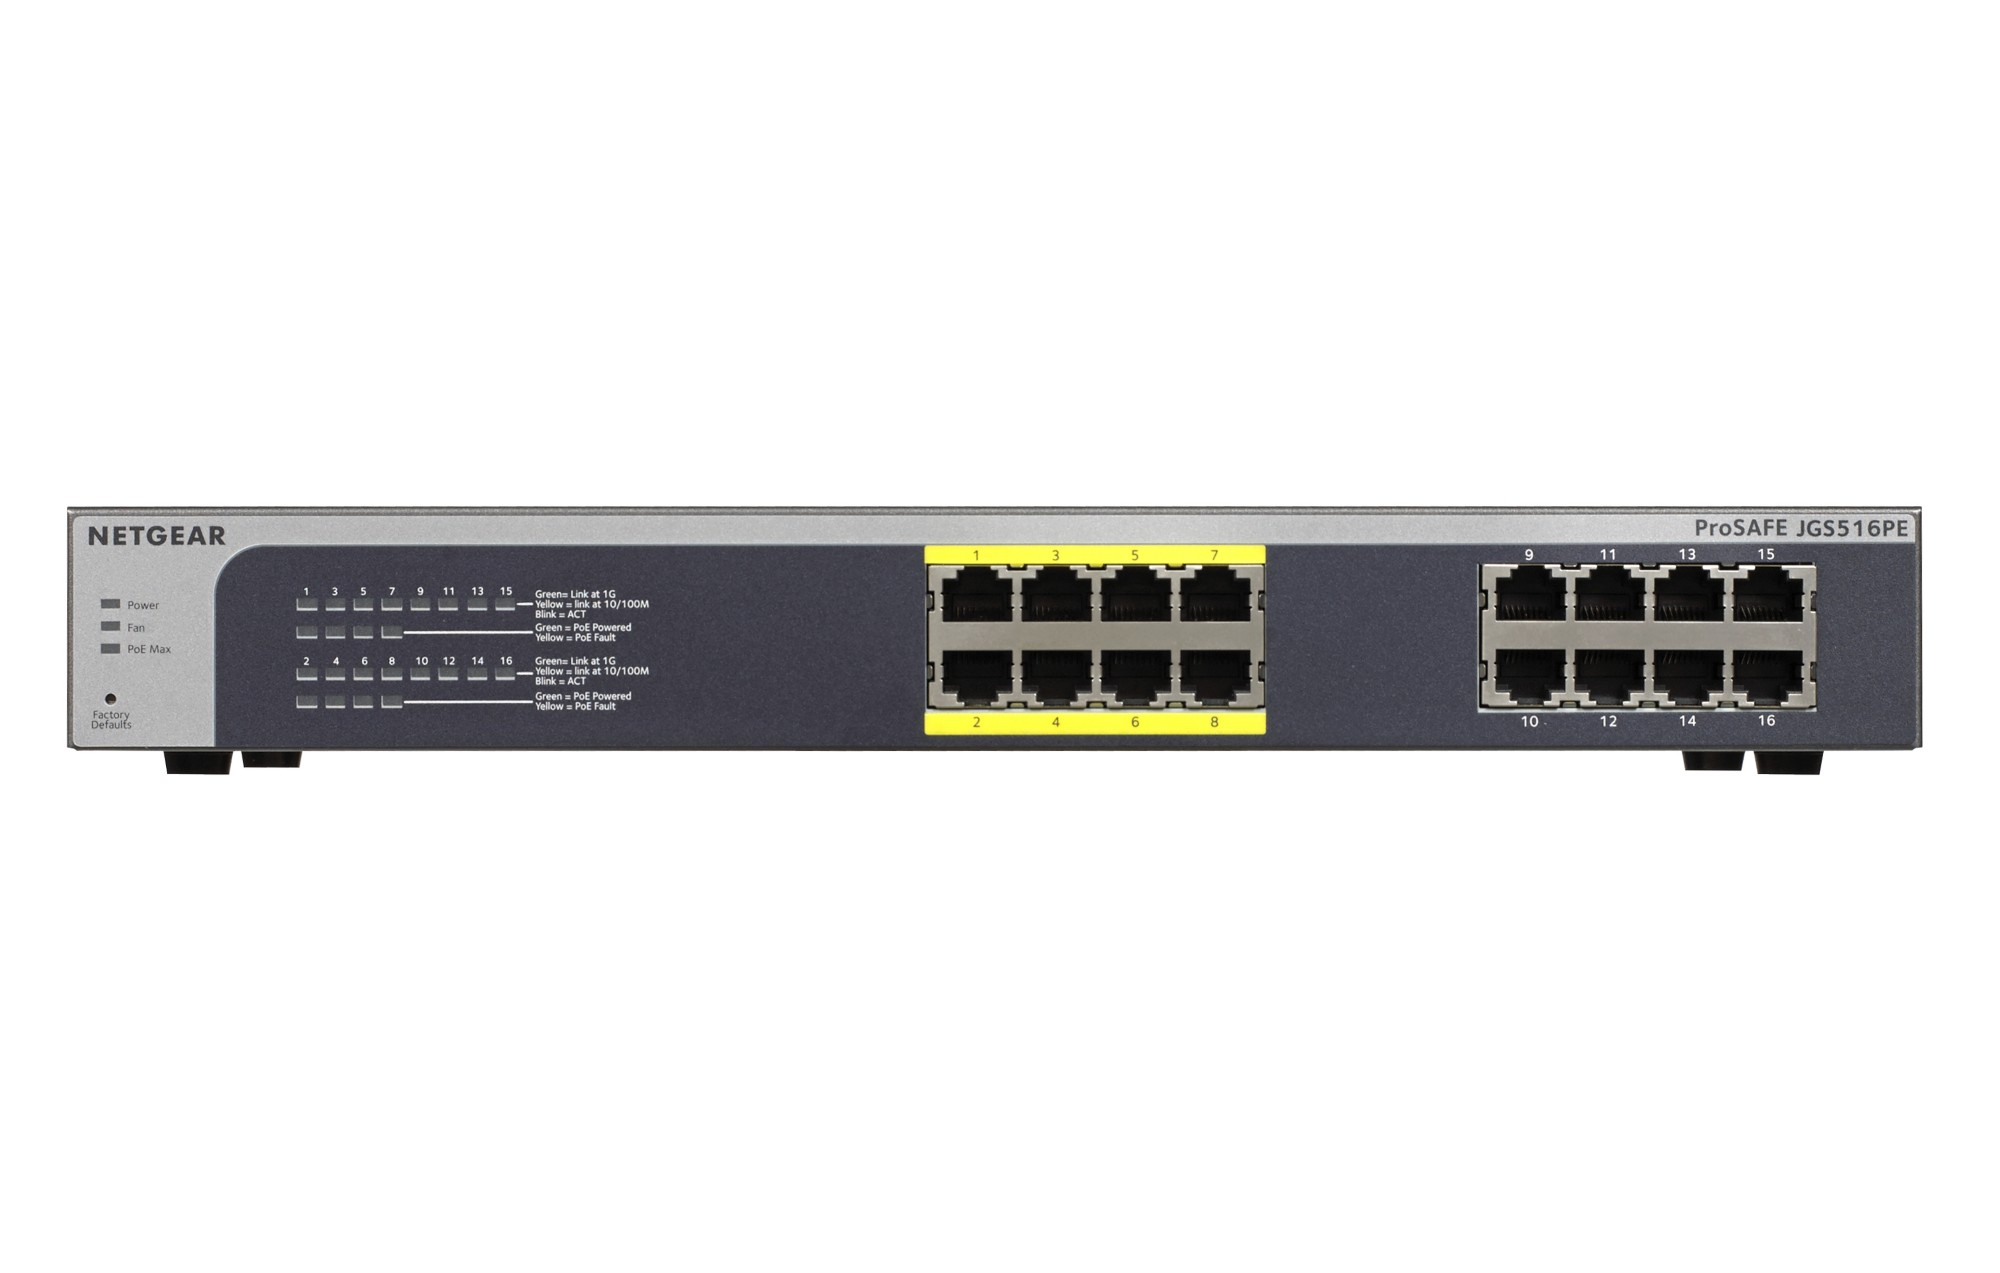 NETGEAR PROSAFE PLUS JGS516PE UNMANAGED NETWORK SWITCH L3 GIGABIT ETHERNET POWER OVER (POE) BLACK